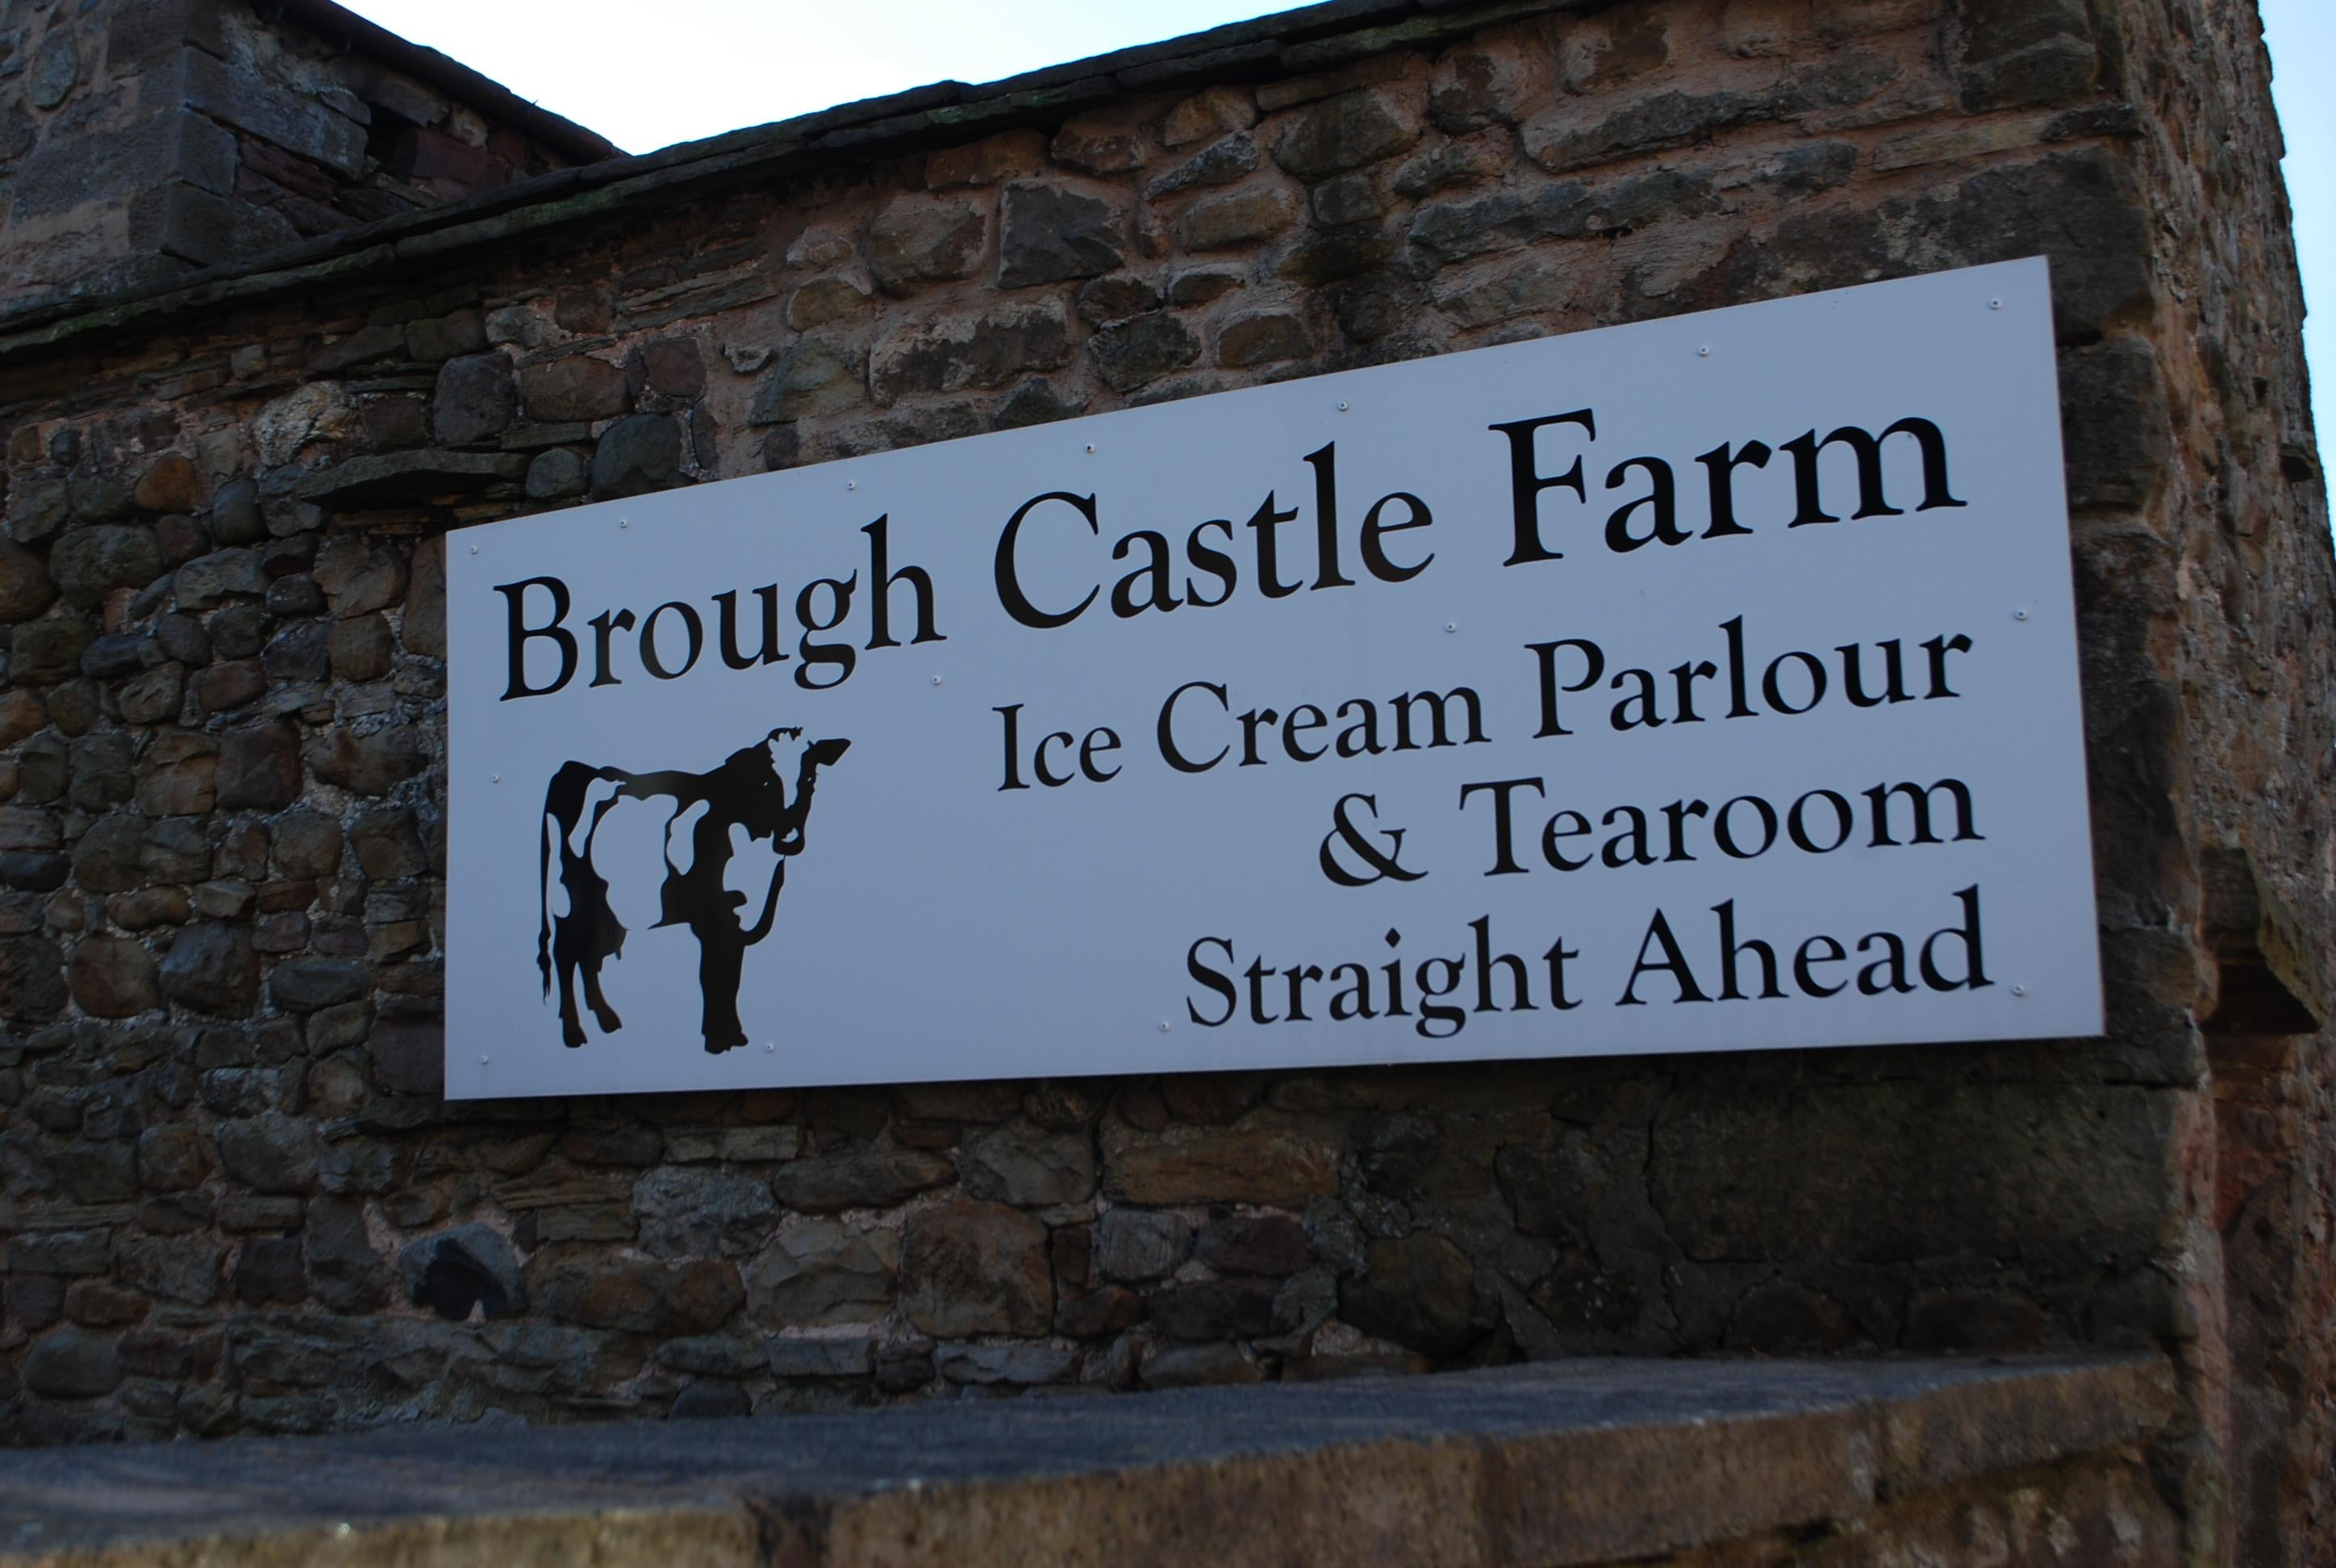 Brough Castle Farm